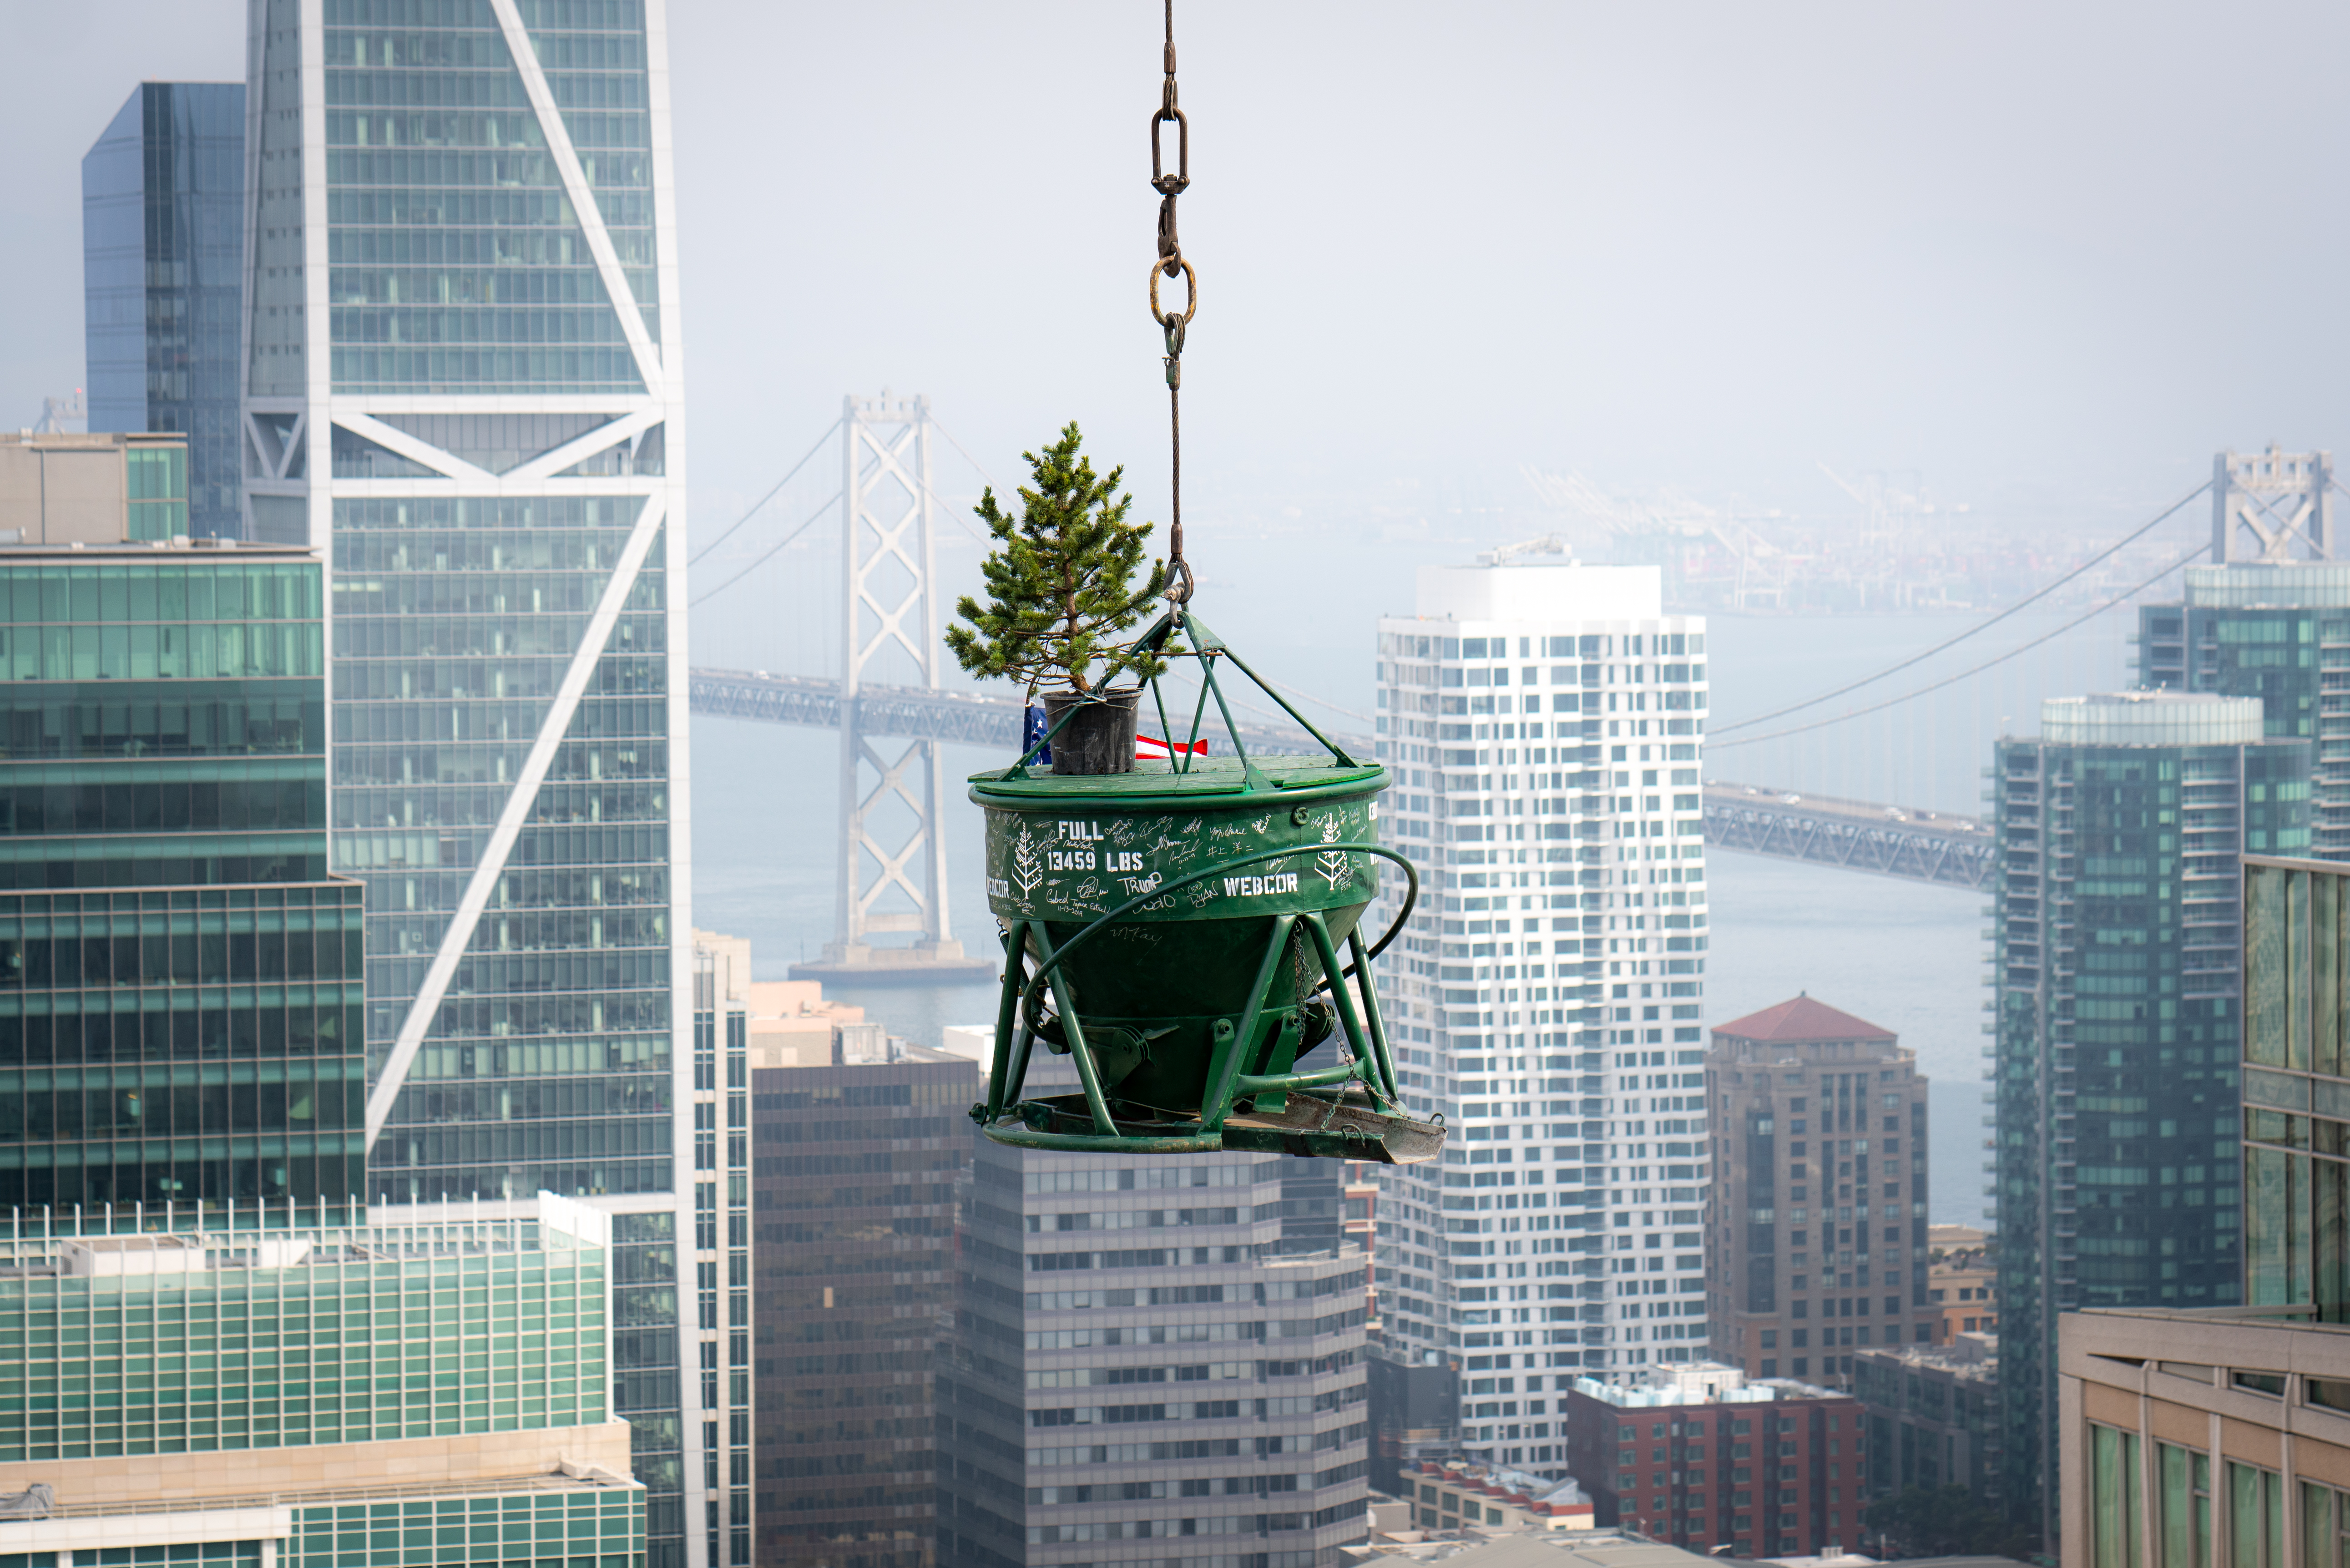 A tree in a bucked on a board being lifted by a rope with views of downtown San Francisco in the background.